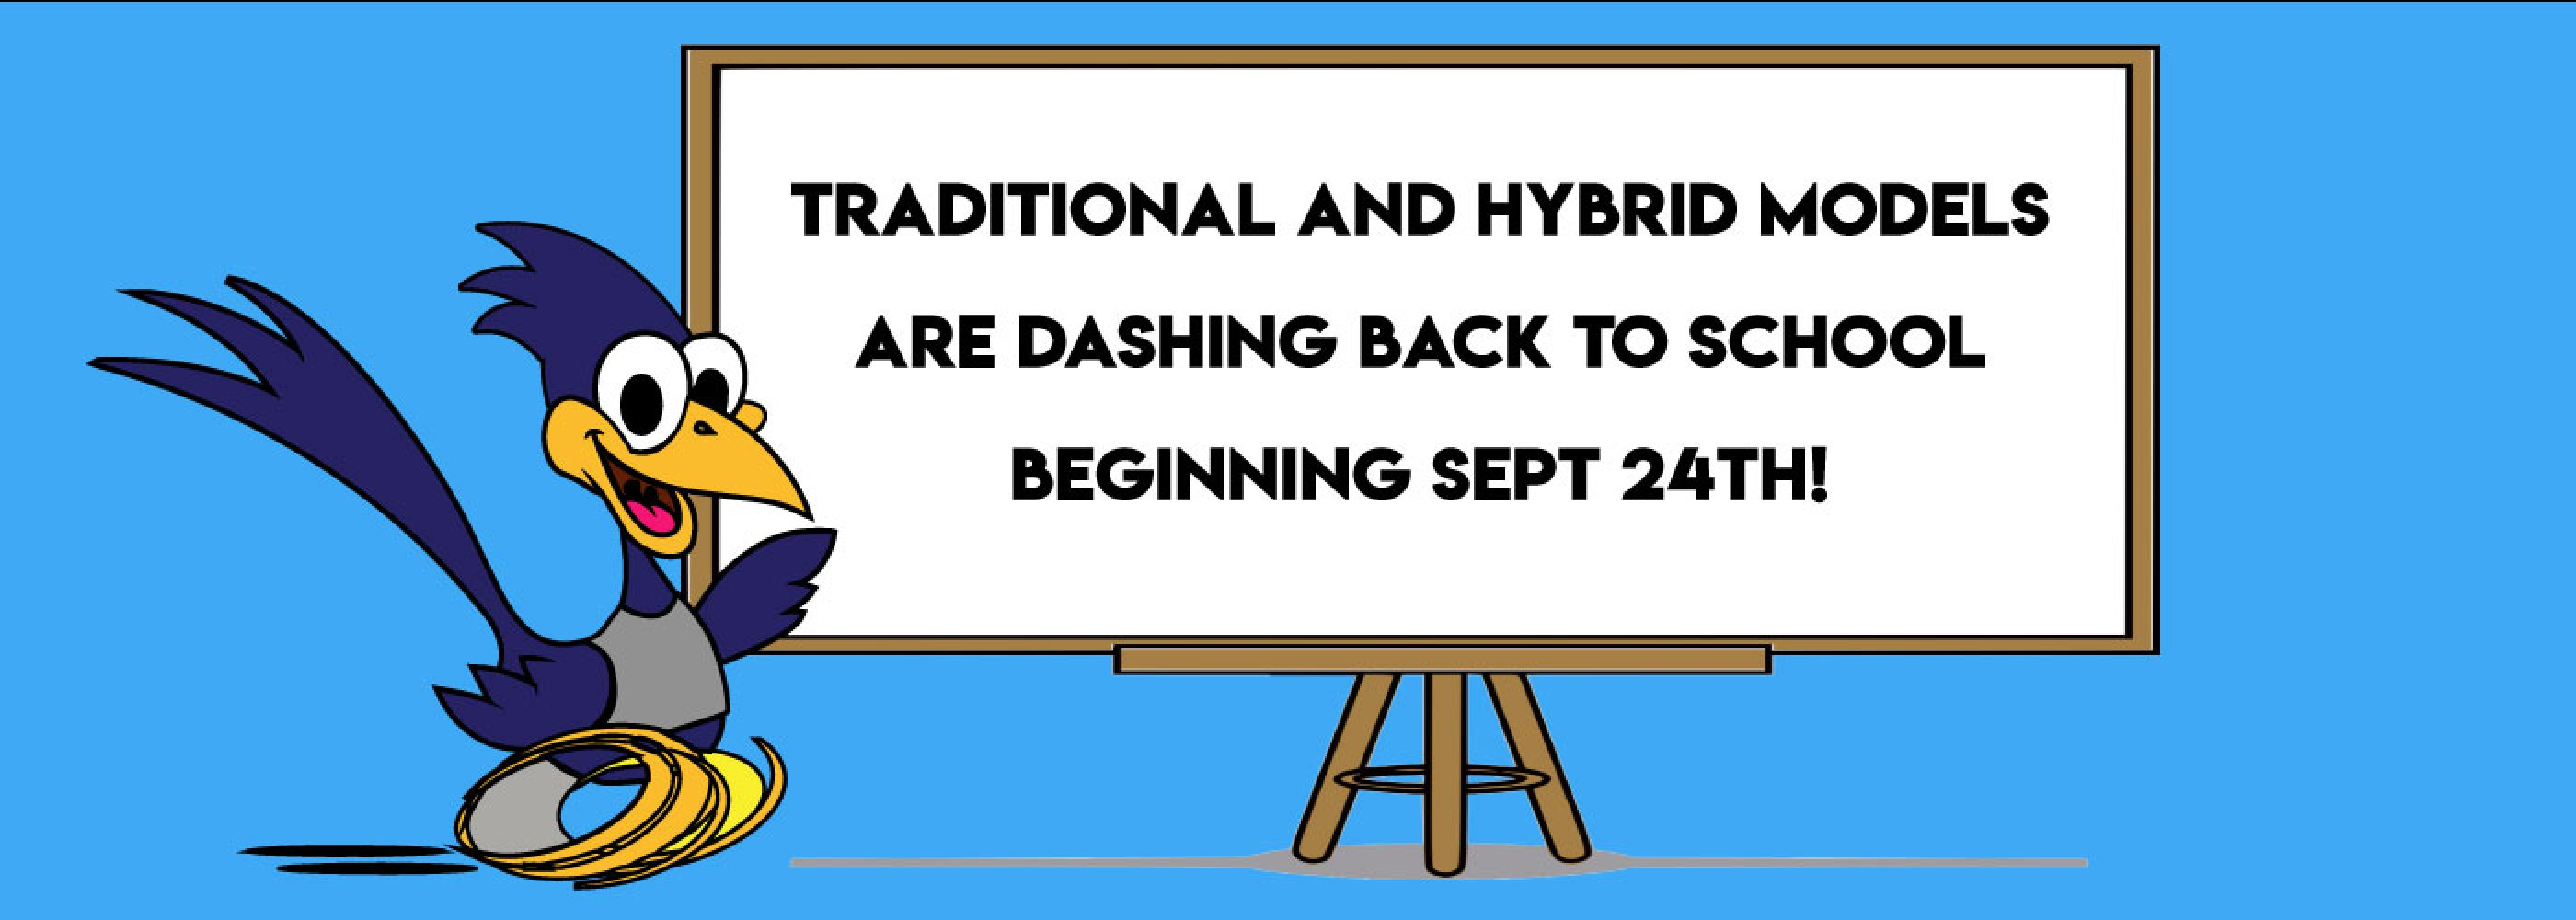 Back to school whiteboard with DASH